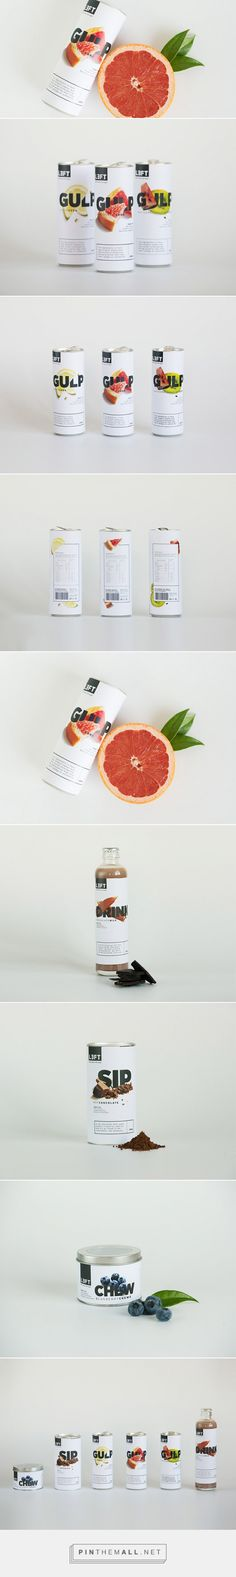 LEFT -  Package design & identity for a nutritional brand by Kirsten Bennett, Marguerite Nel